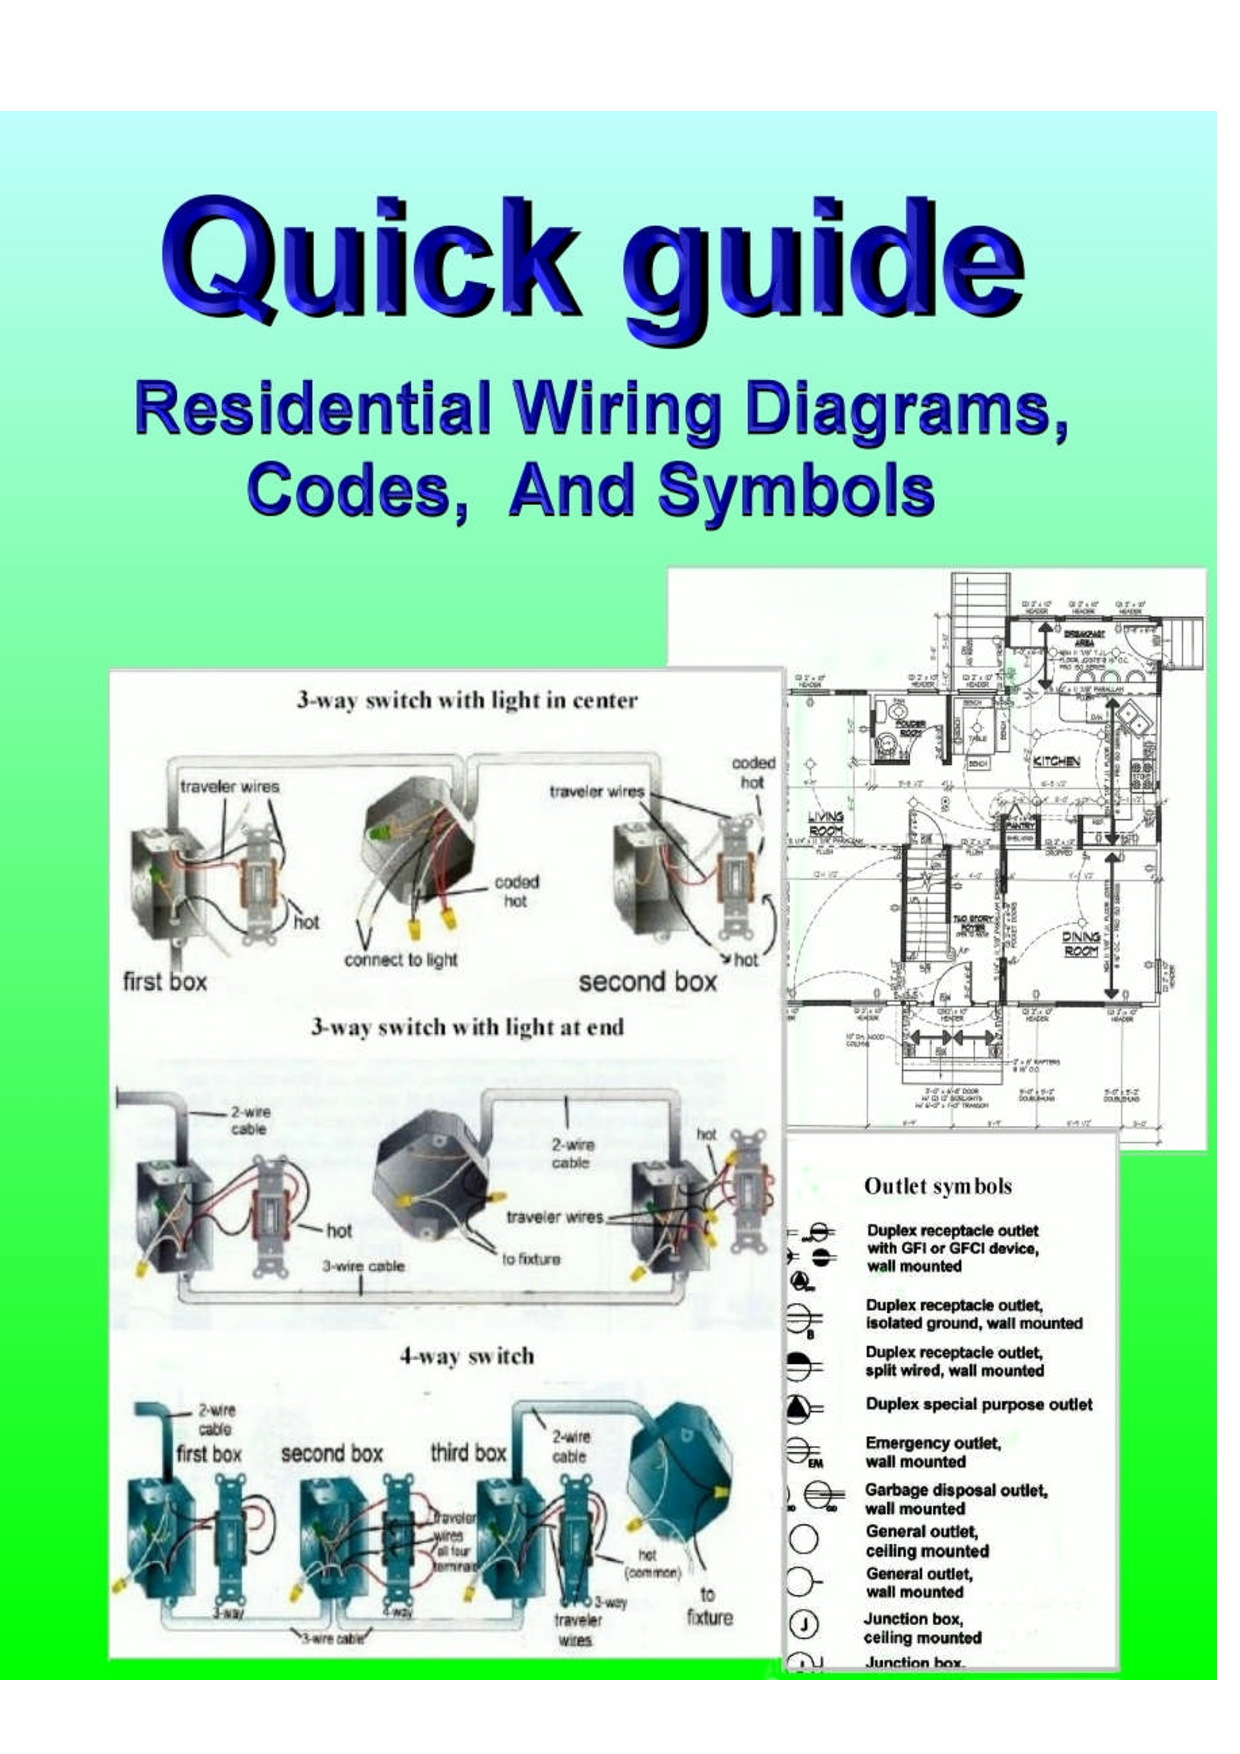 home electrical wiring diagrams pdf download legal documents 39 wiring diagram for house as well as home electrical outlet wiring [ 1240 x 1754 Pixel ]